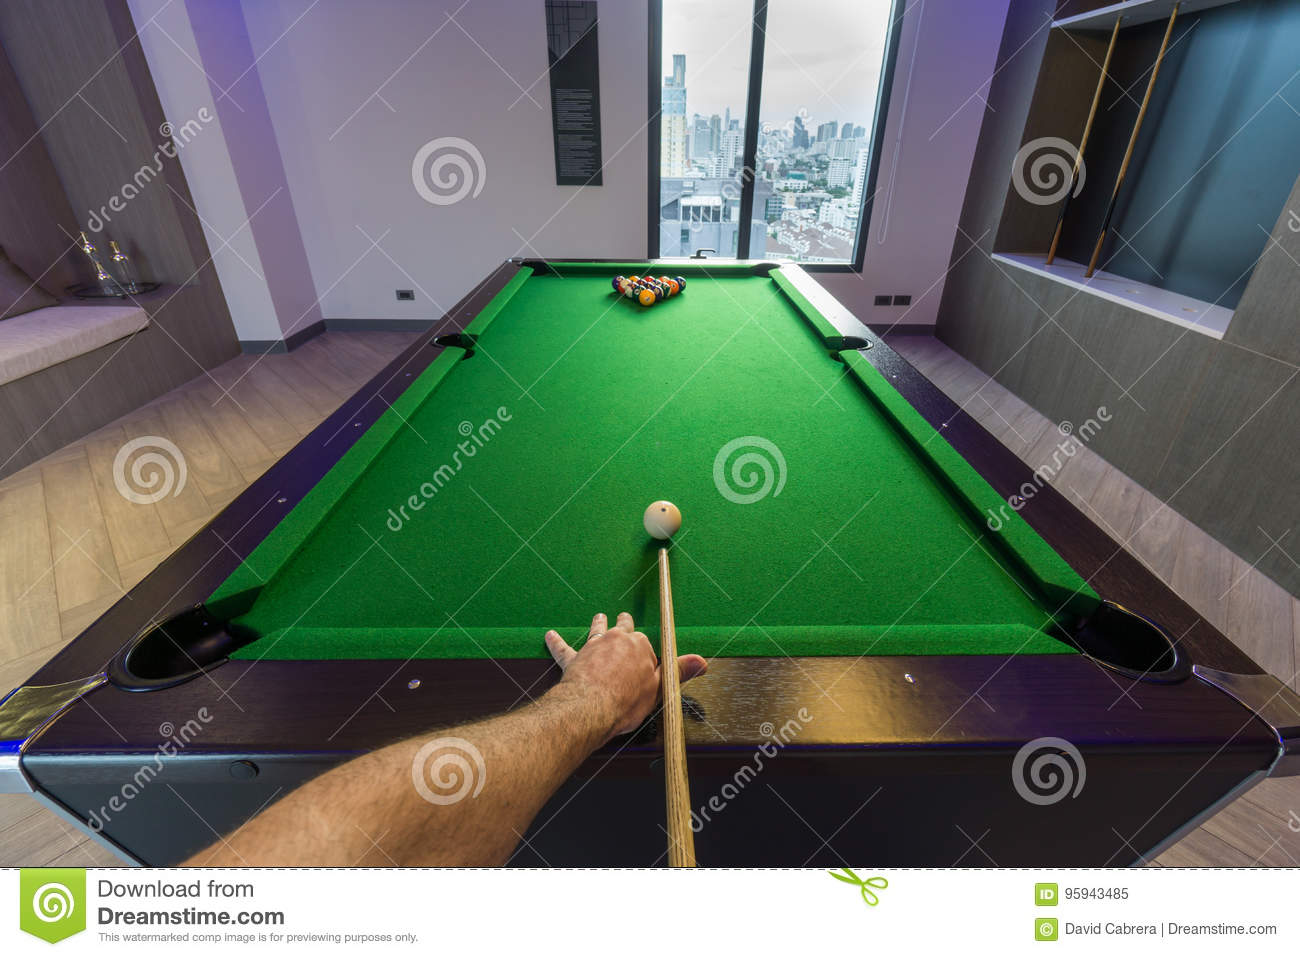 Man arm playing Snooker Pool green table in a modern games room